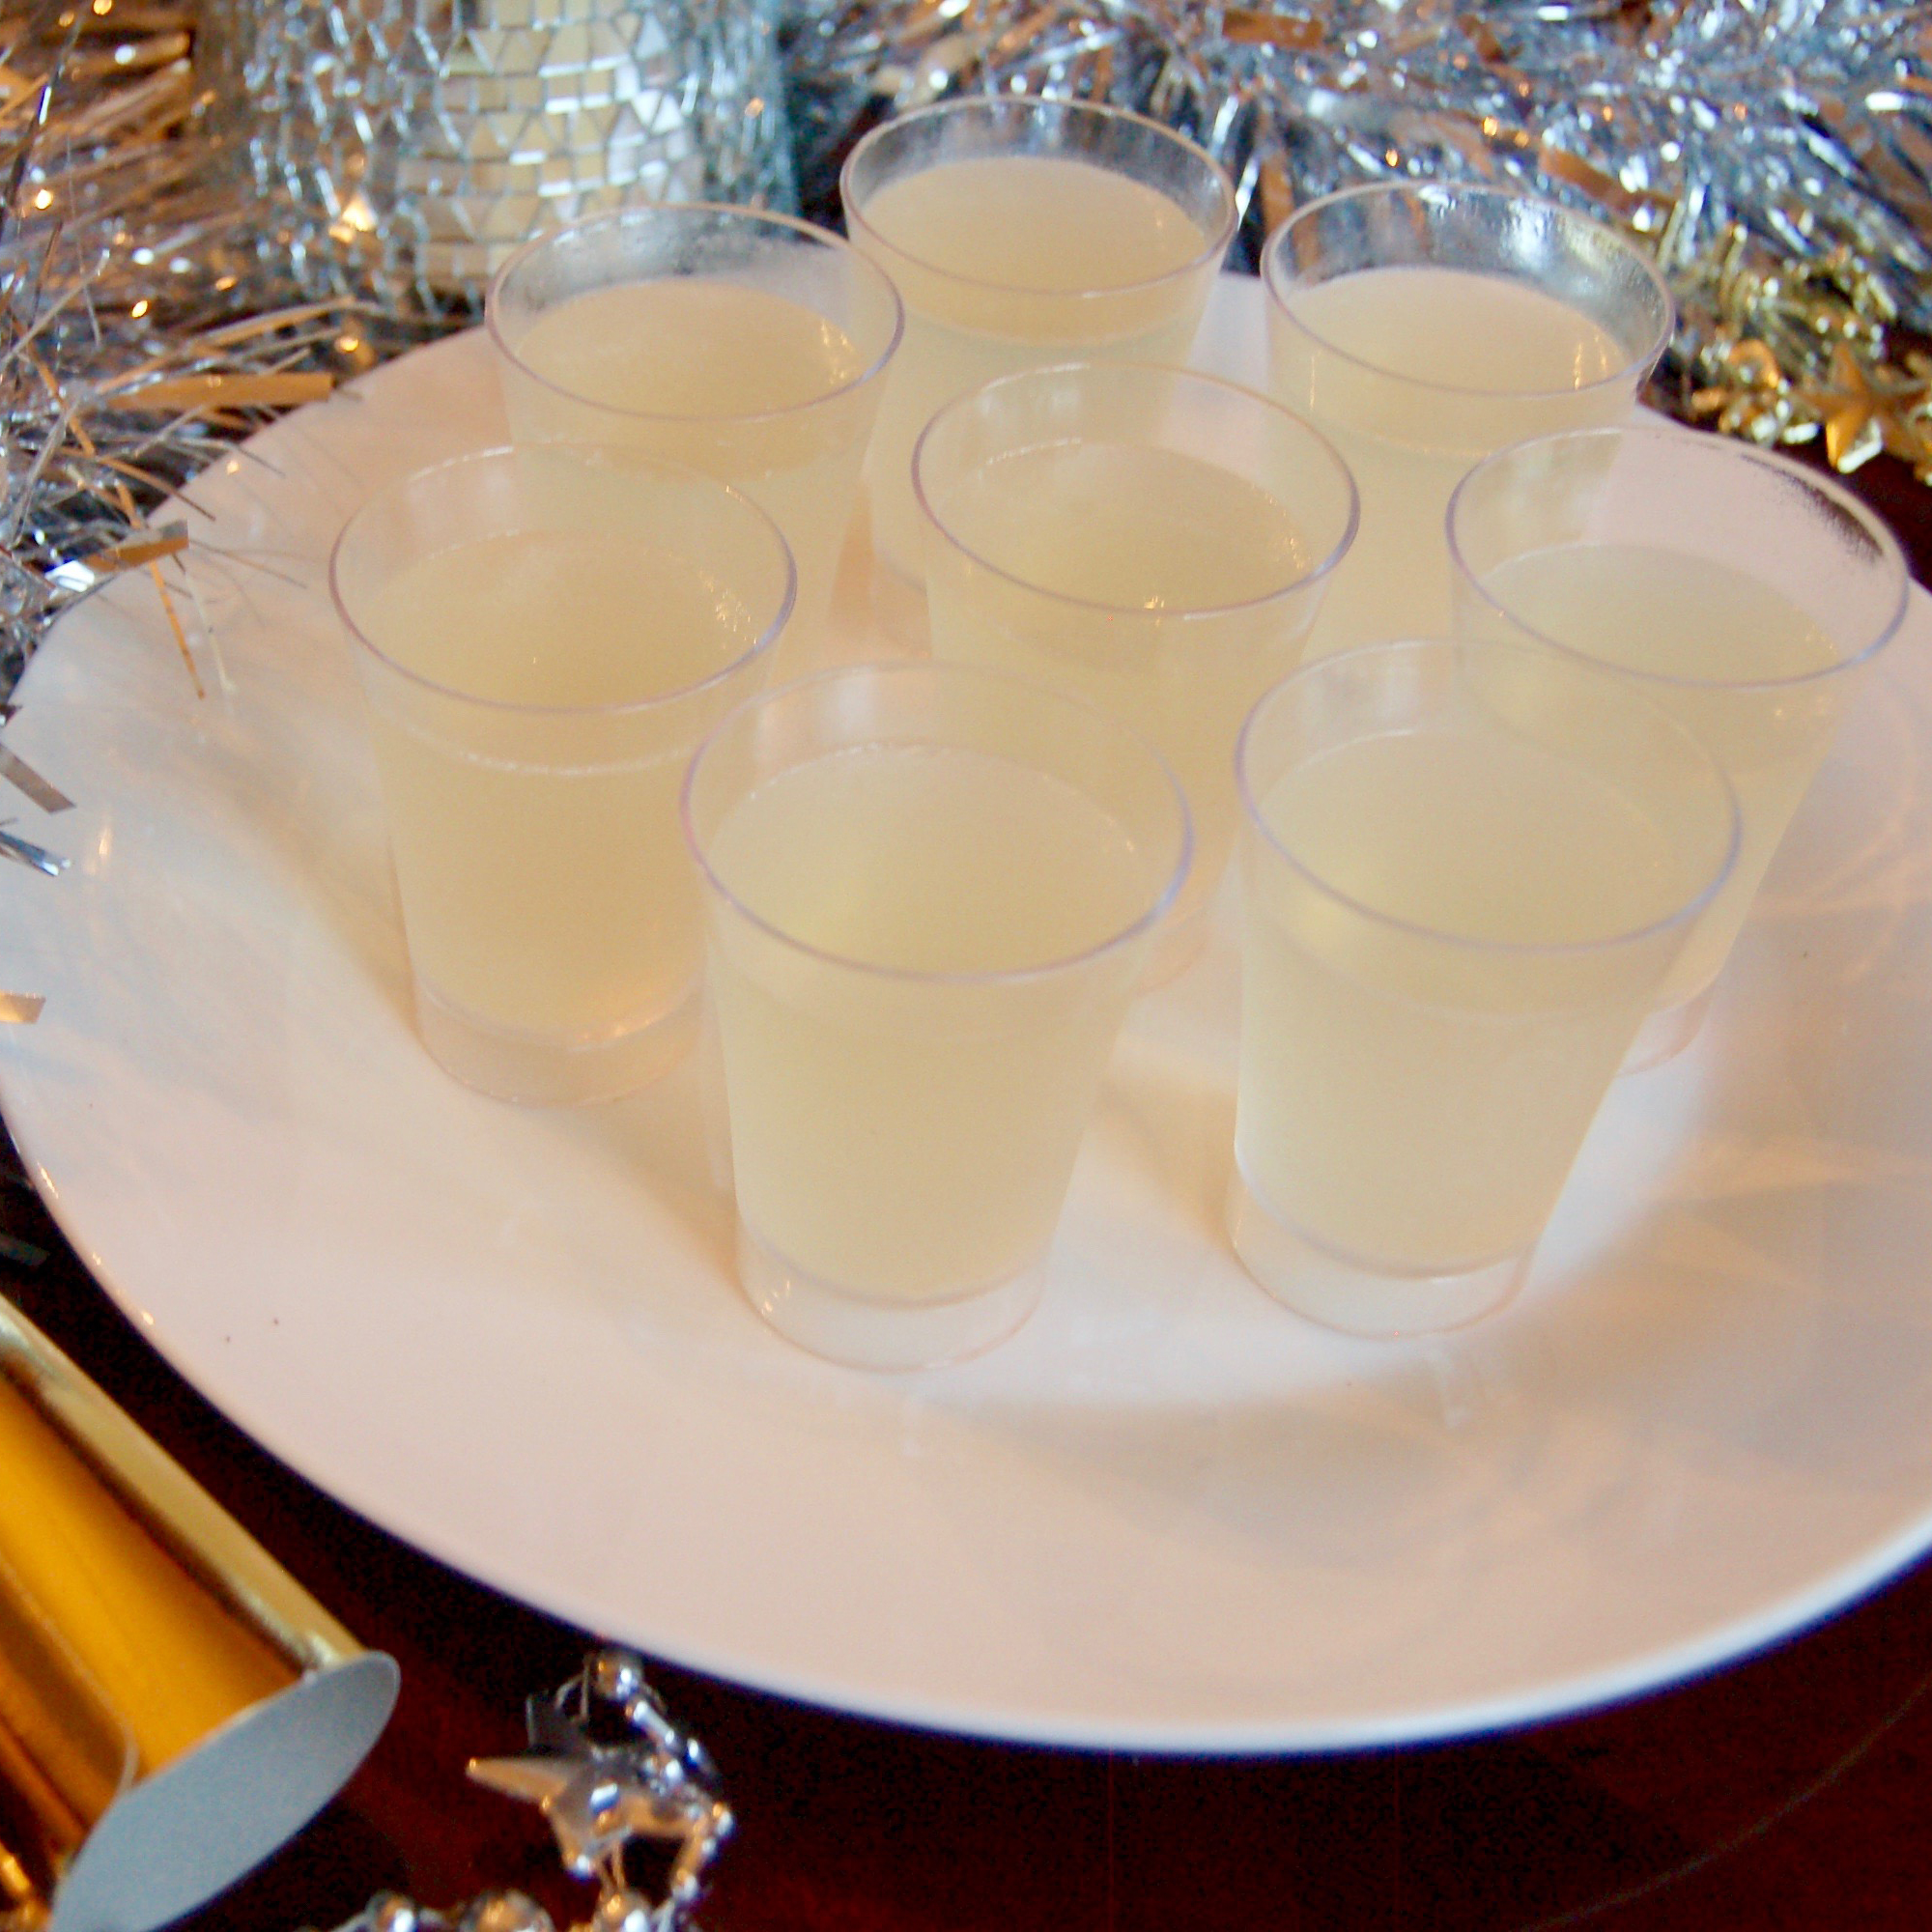 Make These Champagne Jell-O Shots to Ring in the New Year